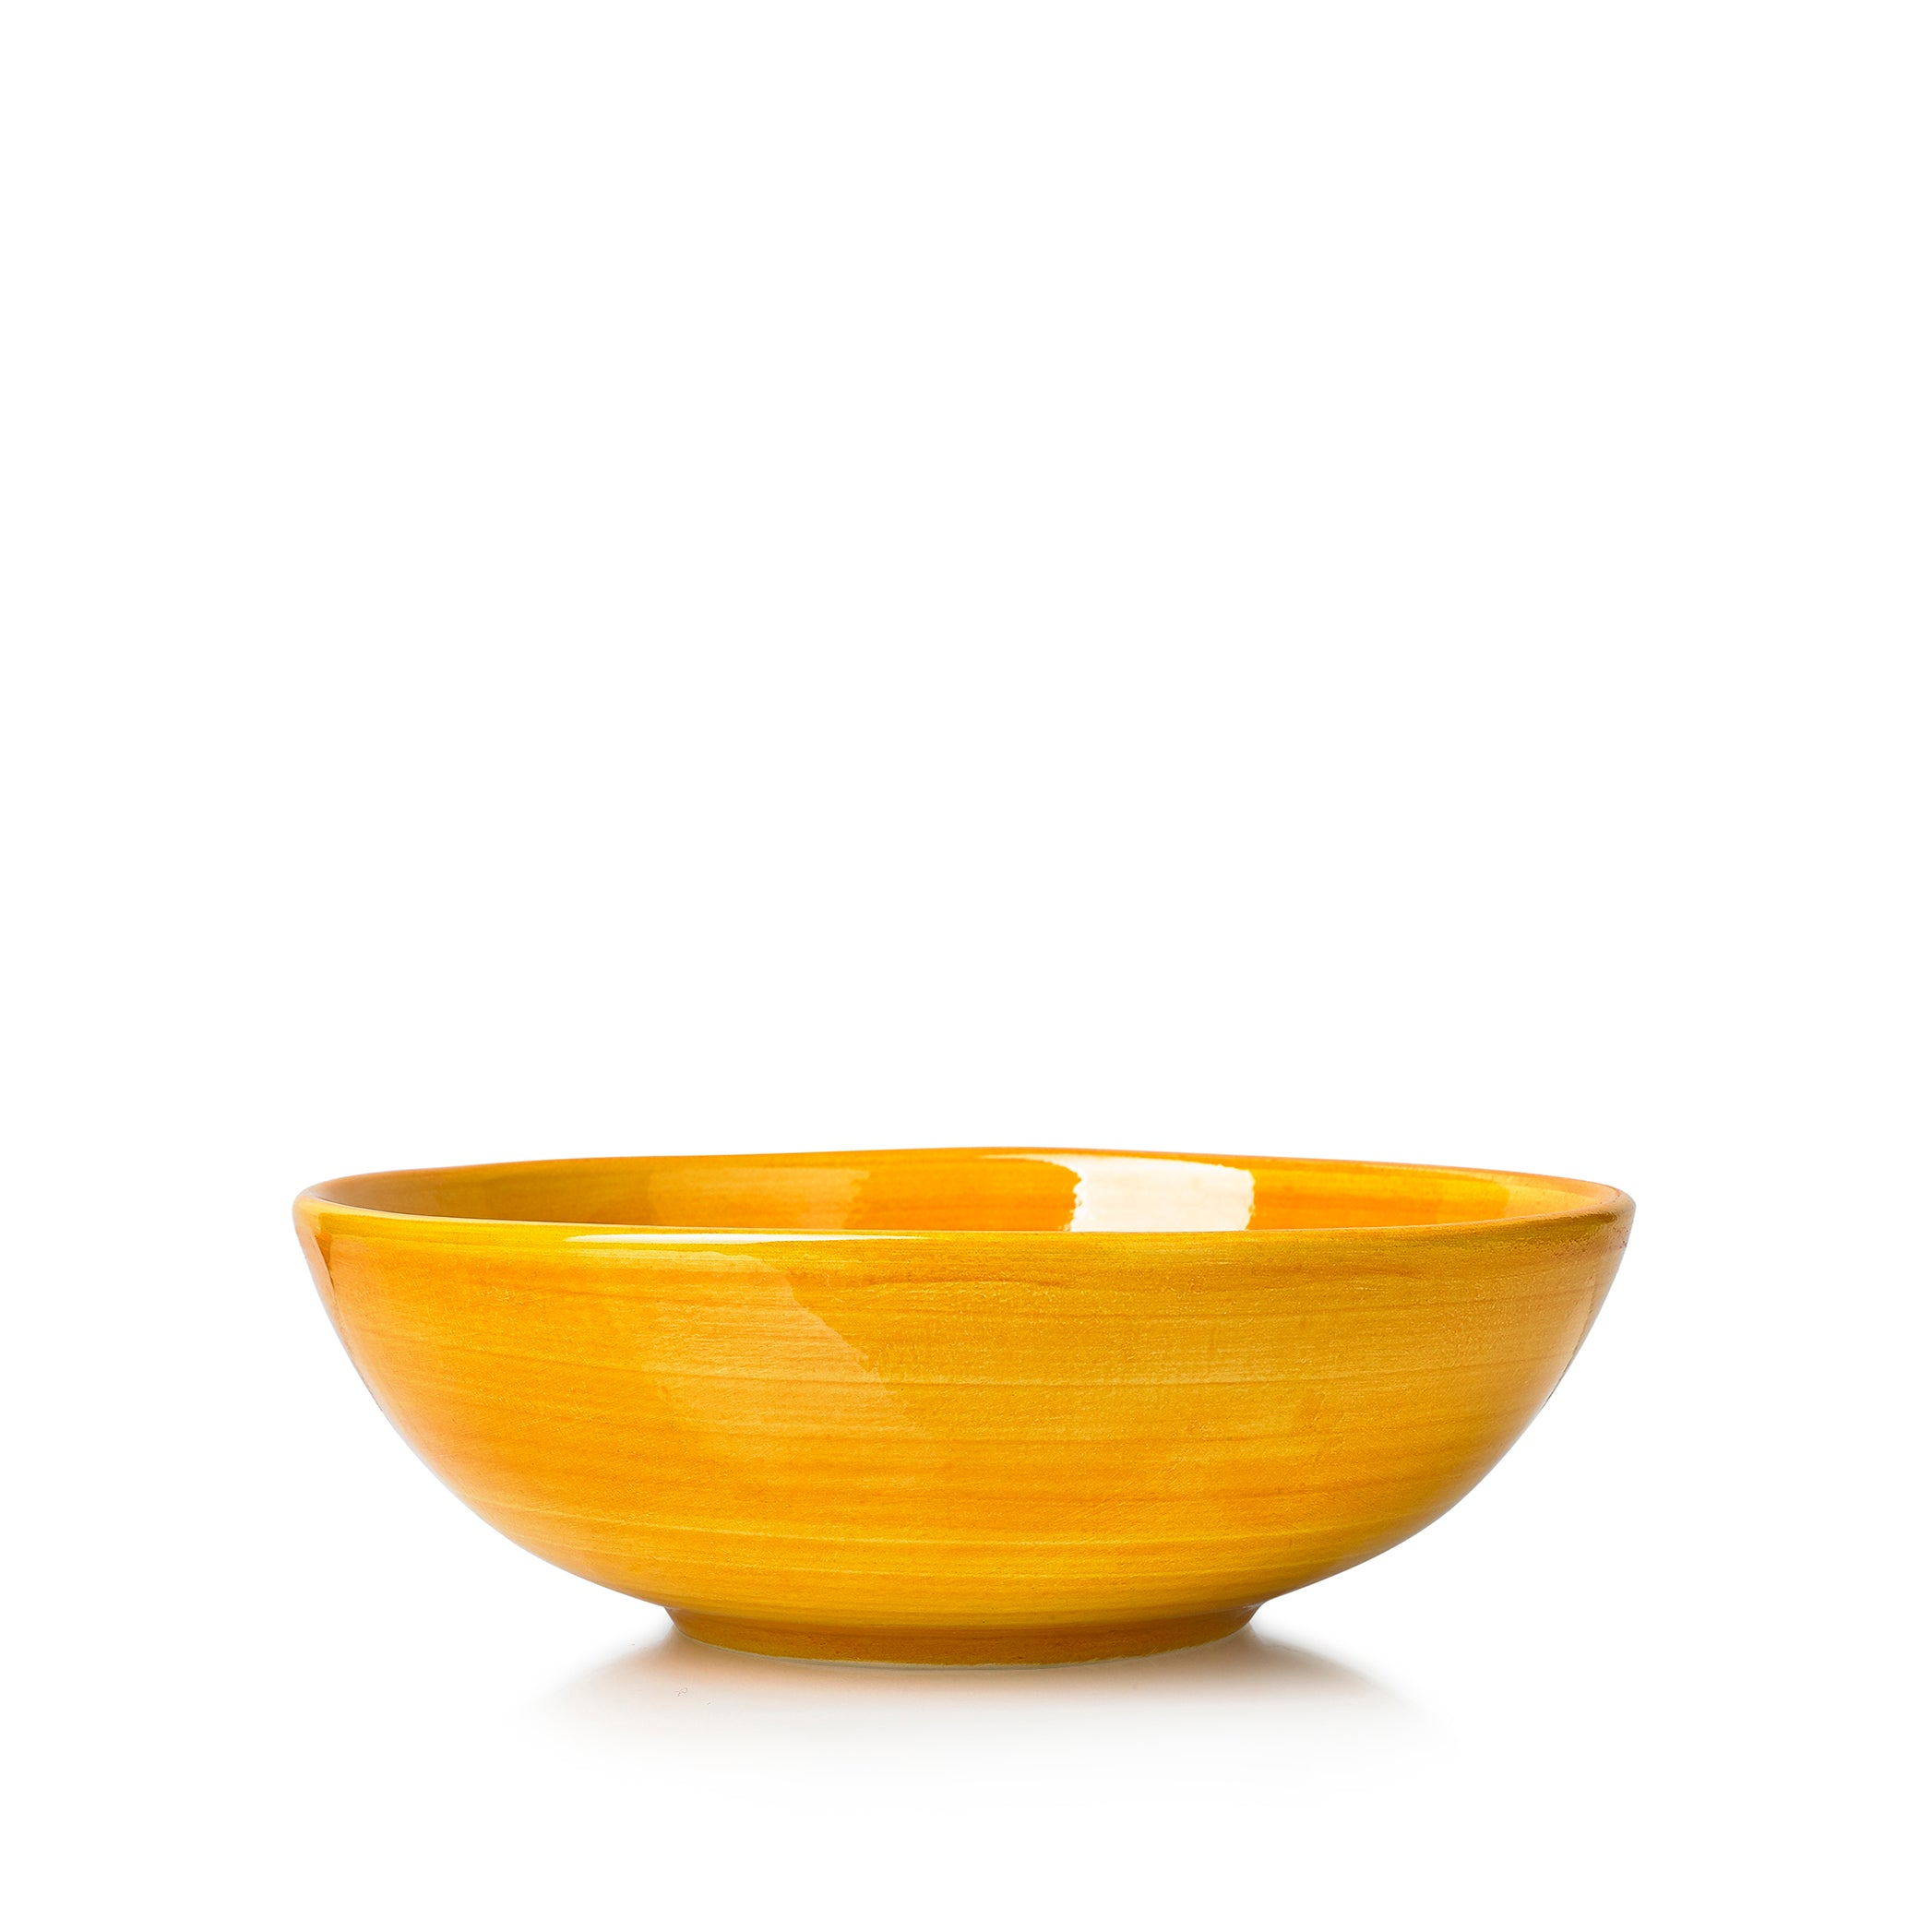 "S&B ""La Couronne"" 18.5cm Ceramic Soup Bowl in Yellow"